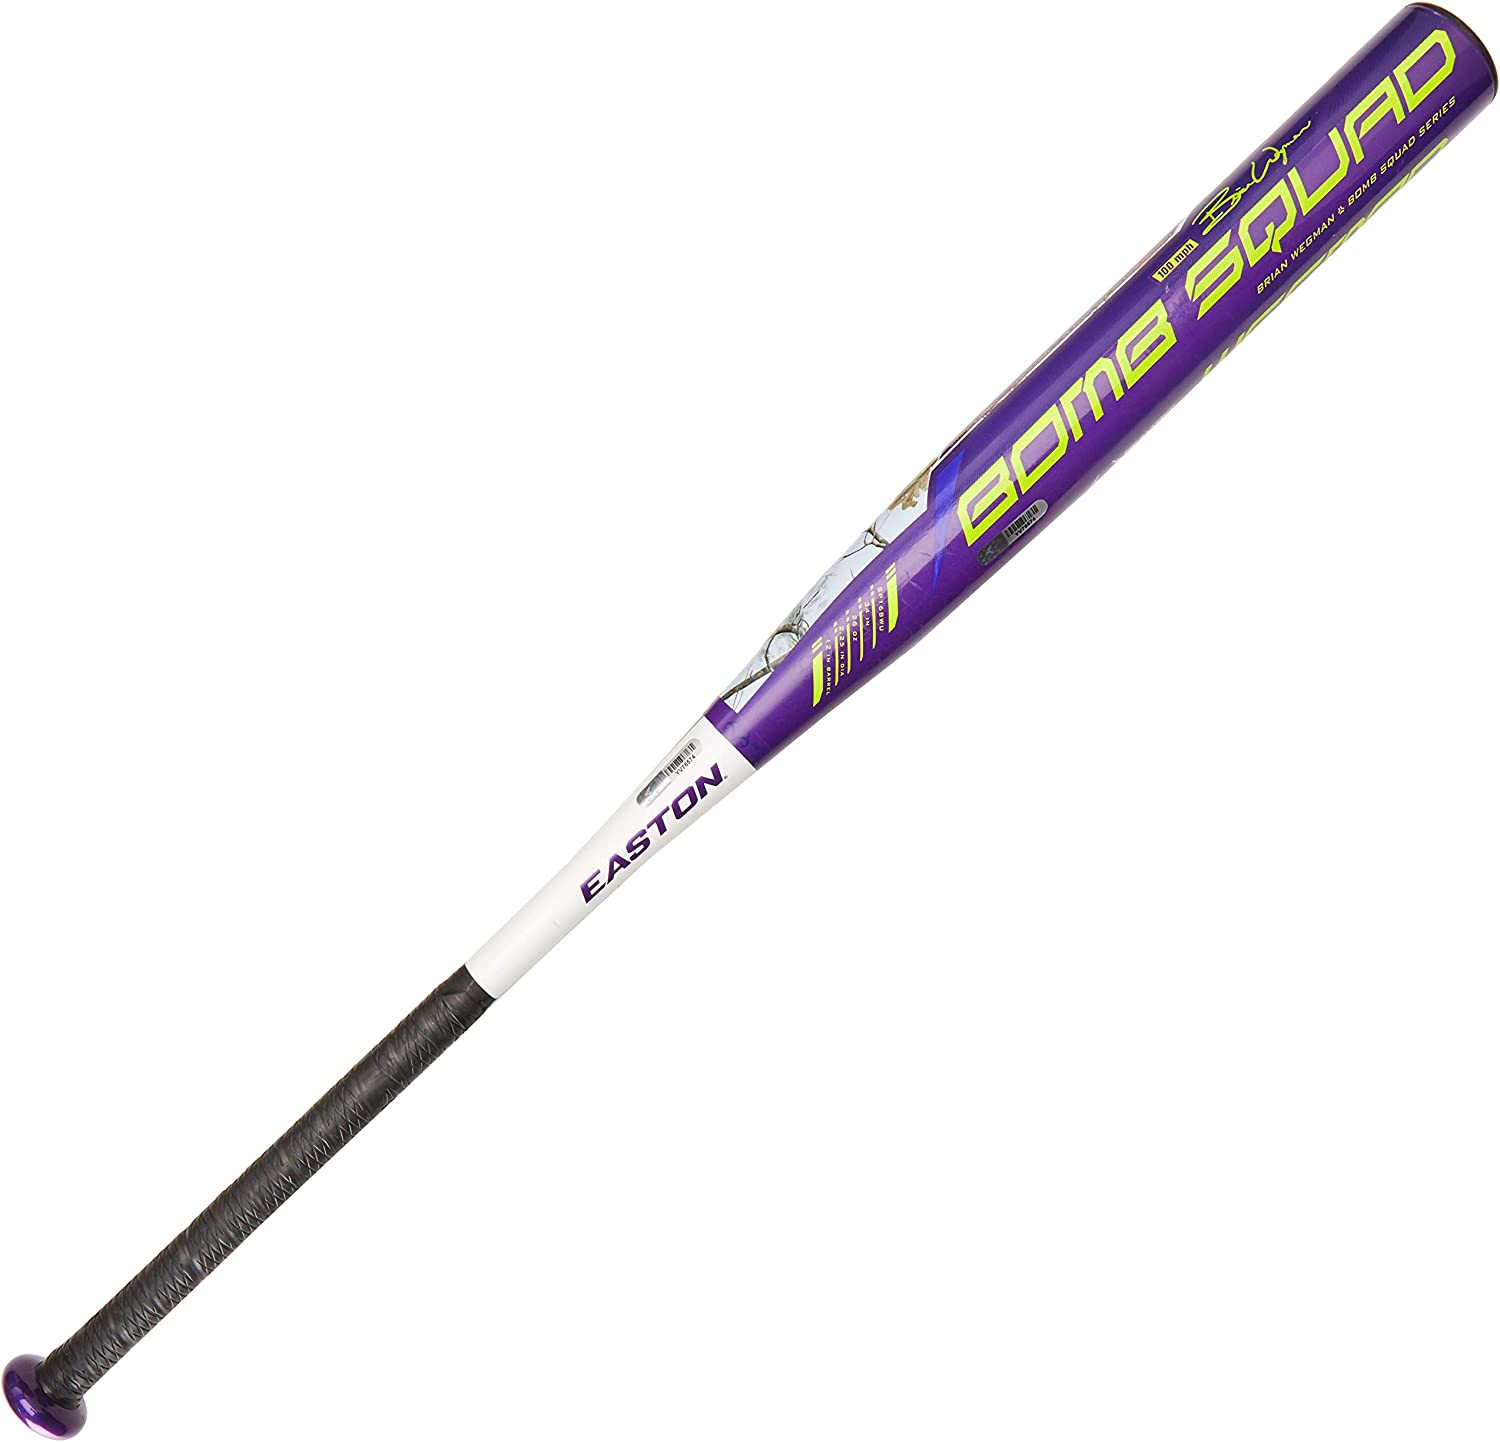 Easton SP16BWA Softball Bat